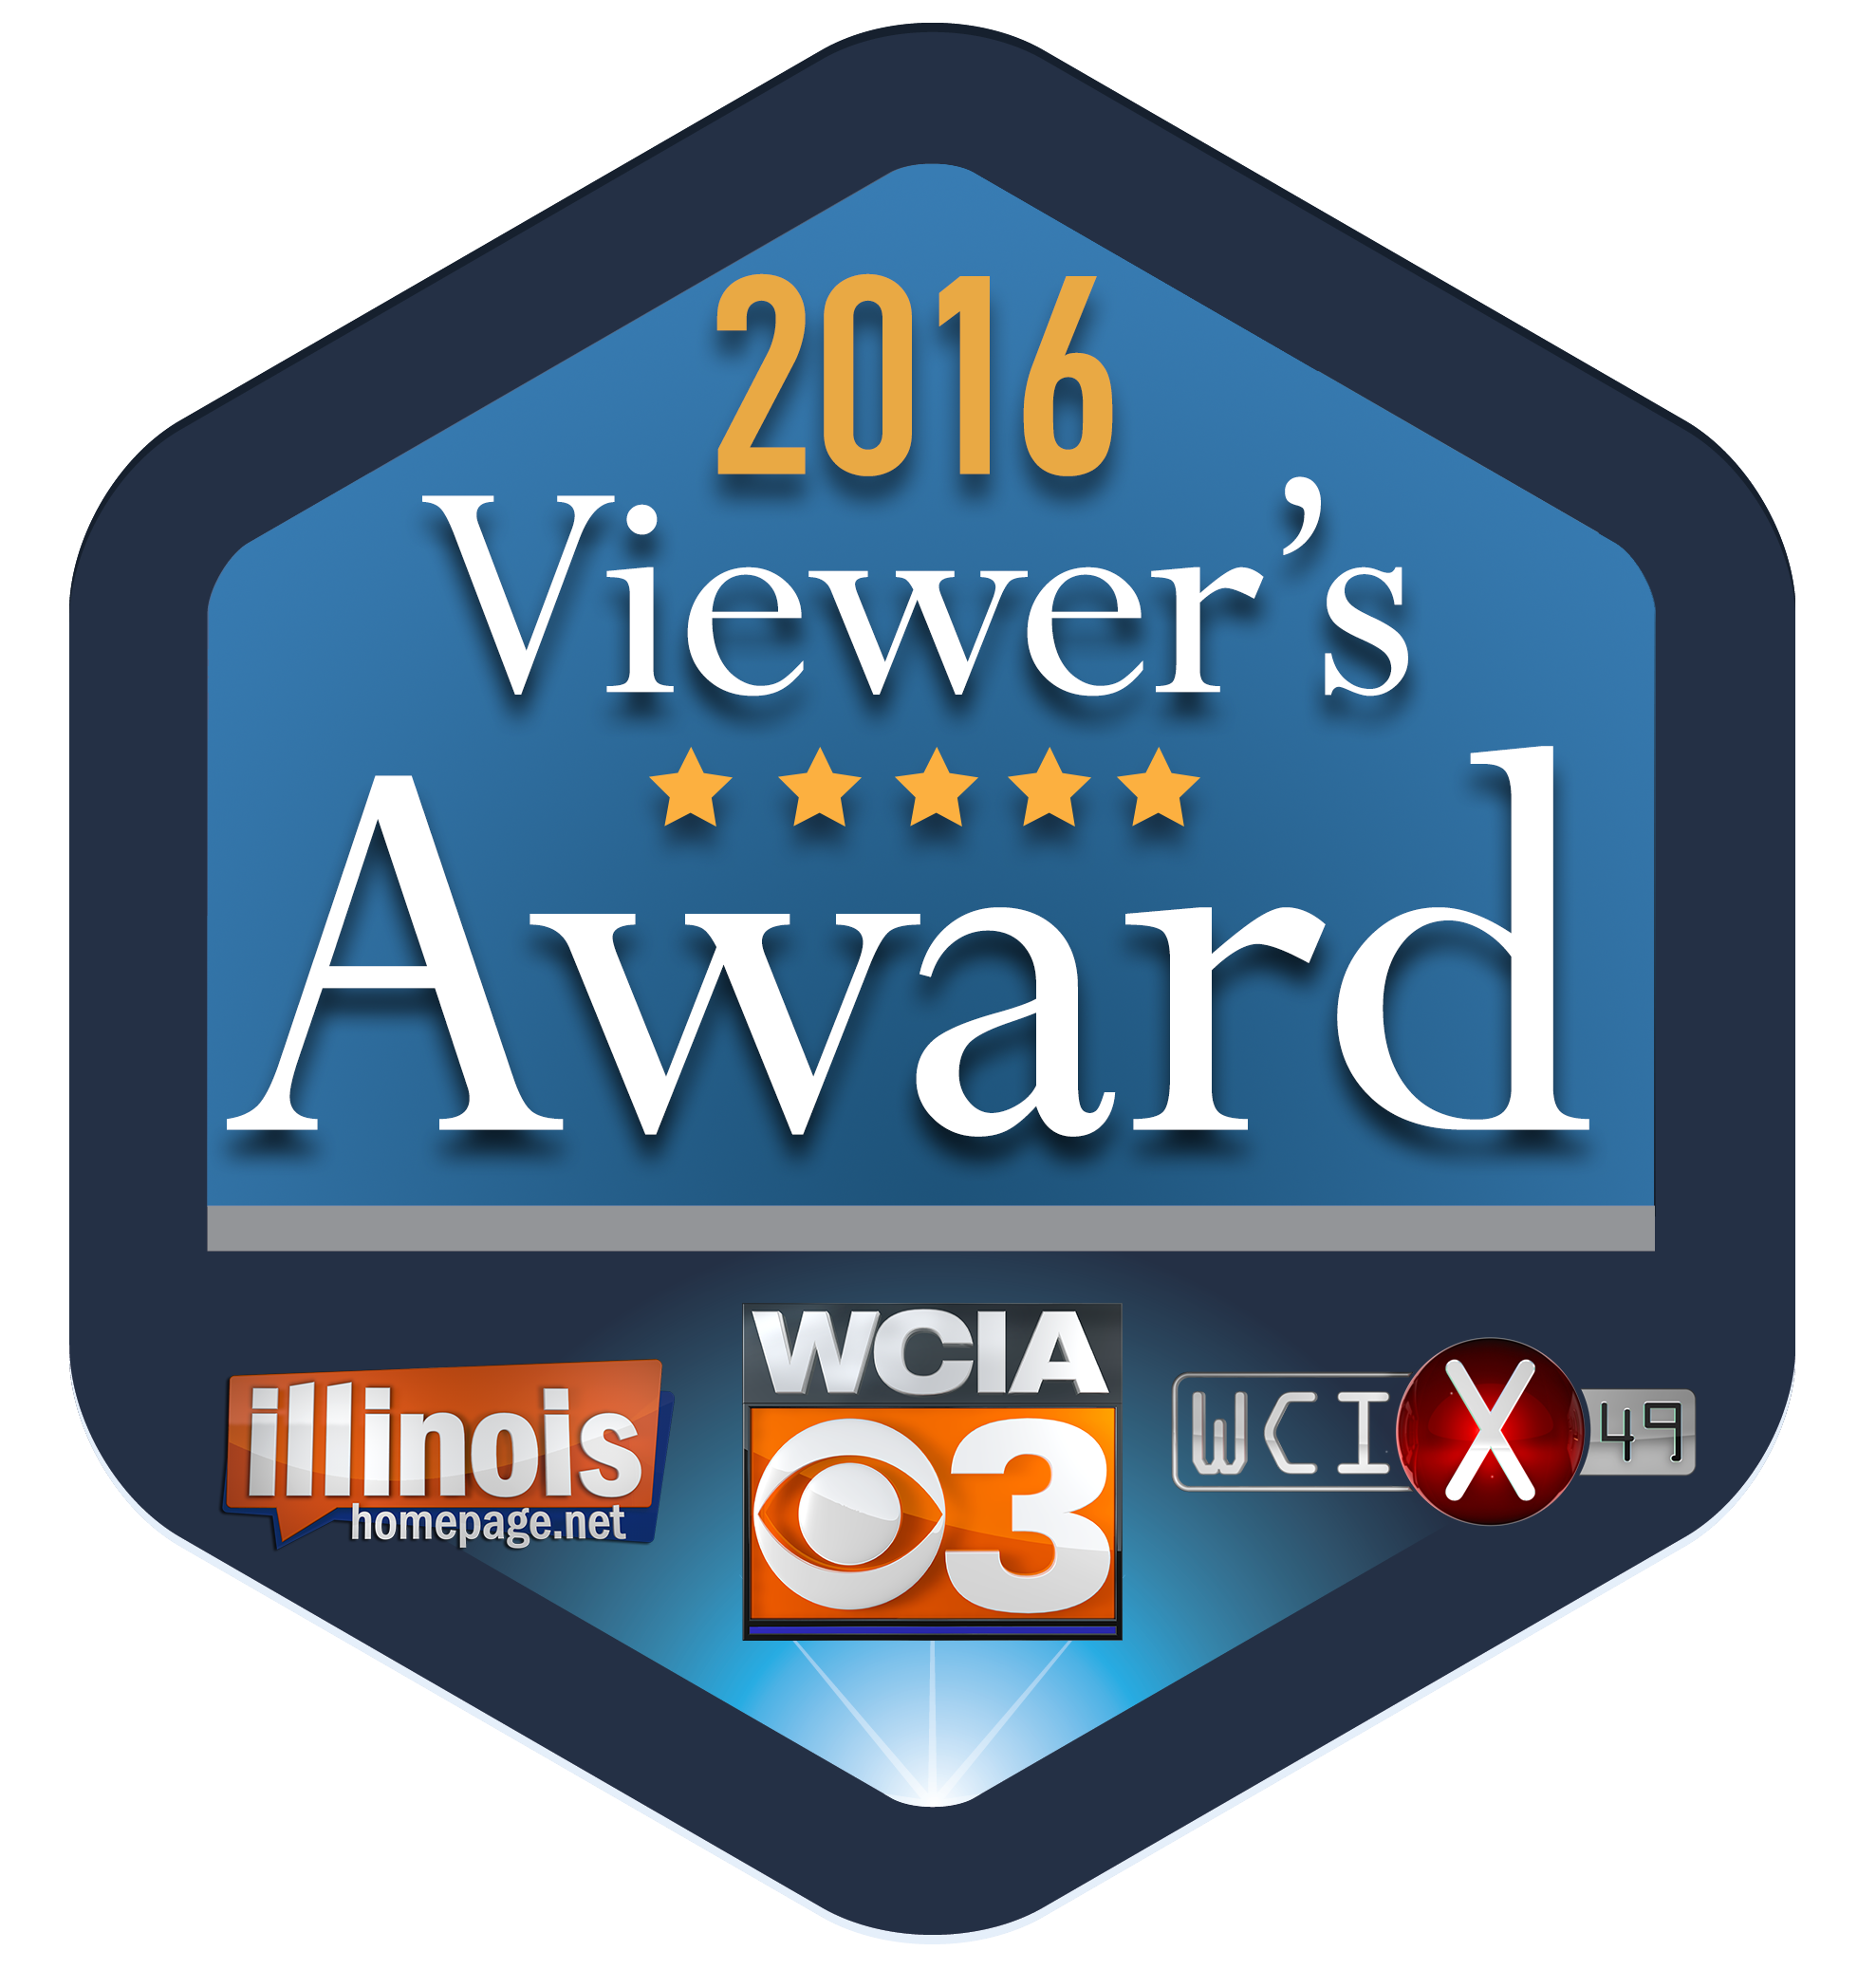 Viewers Award logo